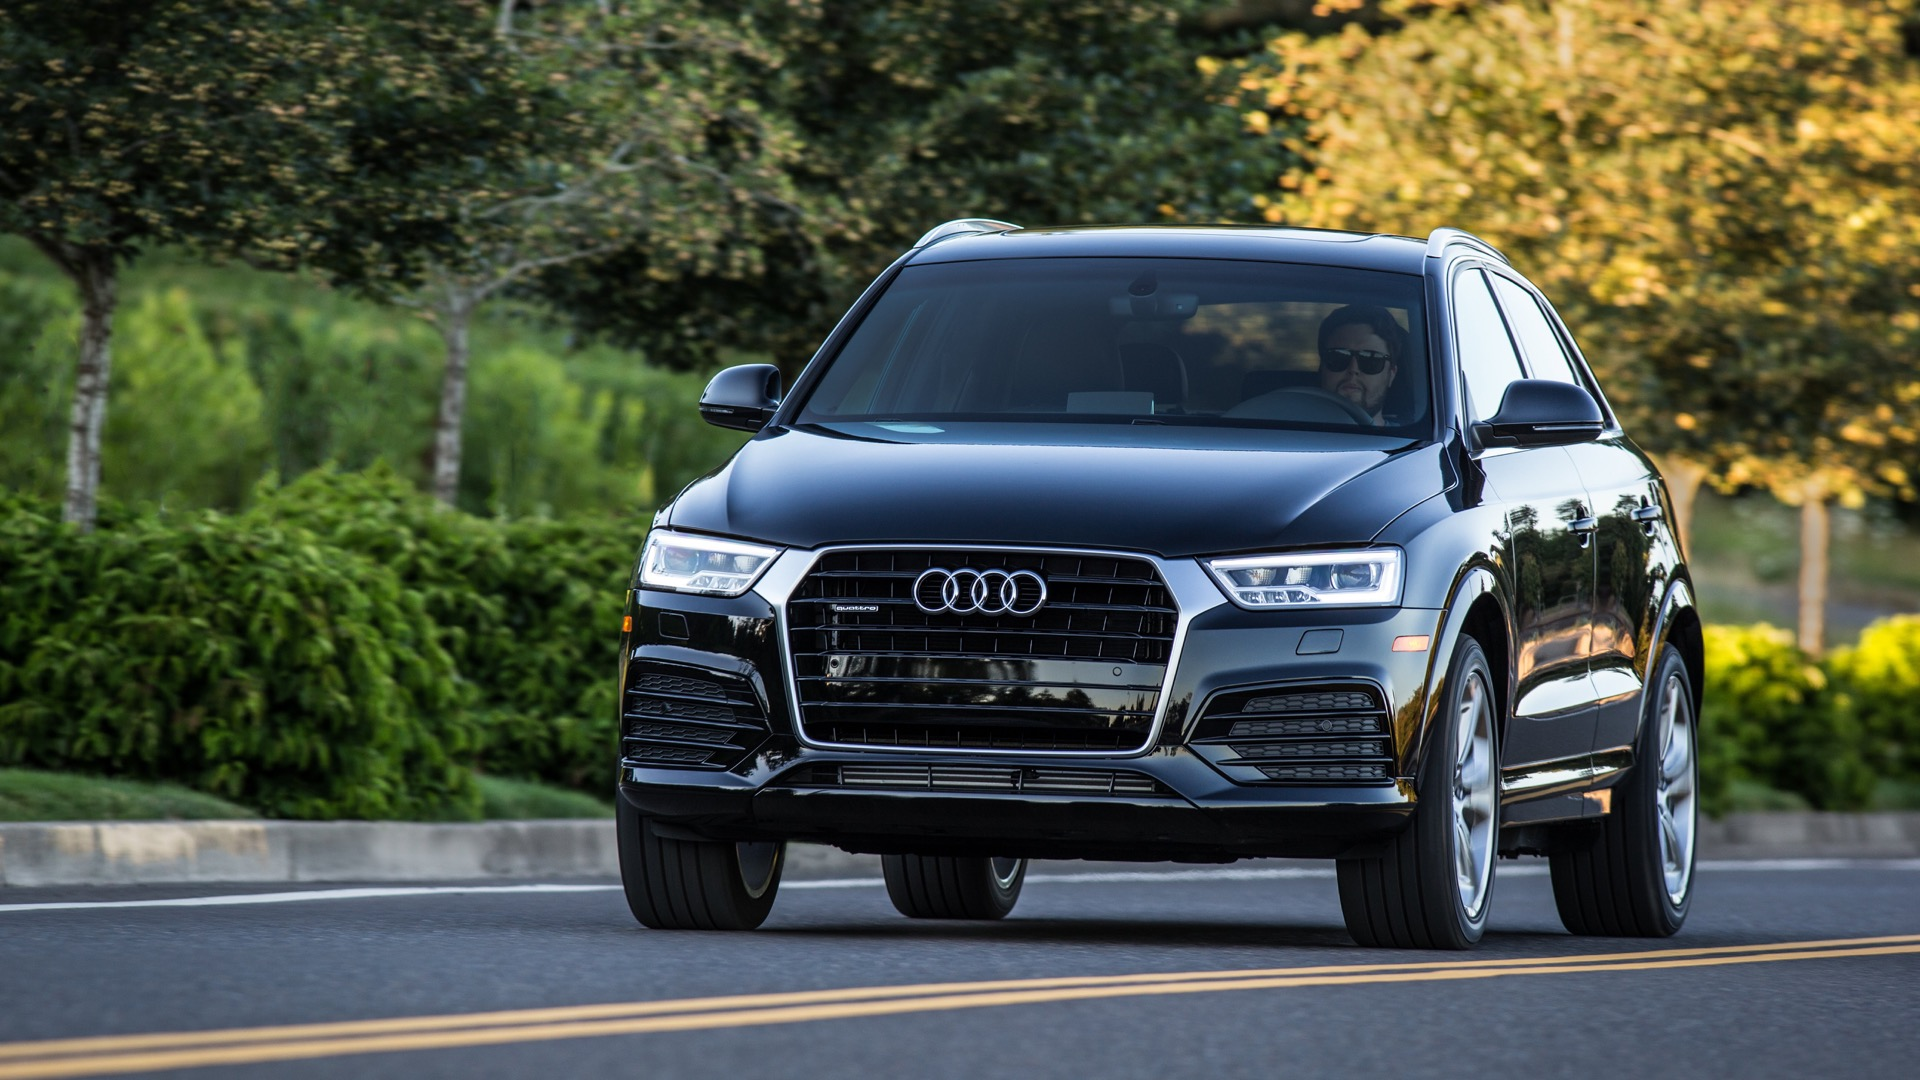 2017 Audi Q3 Review, Ratings, Specs, Prices, and Photos - The Car ...